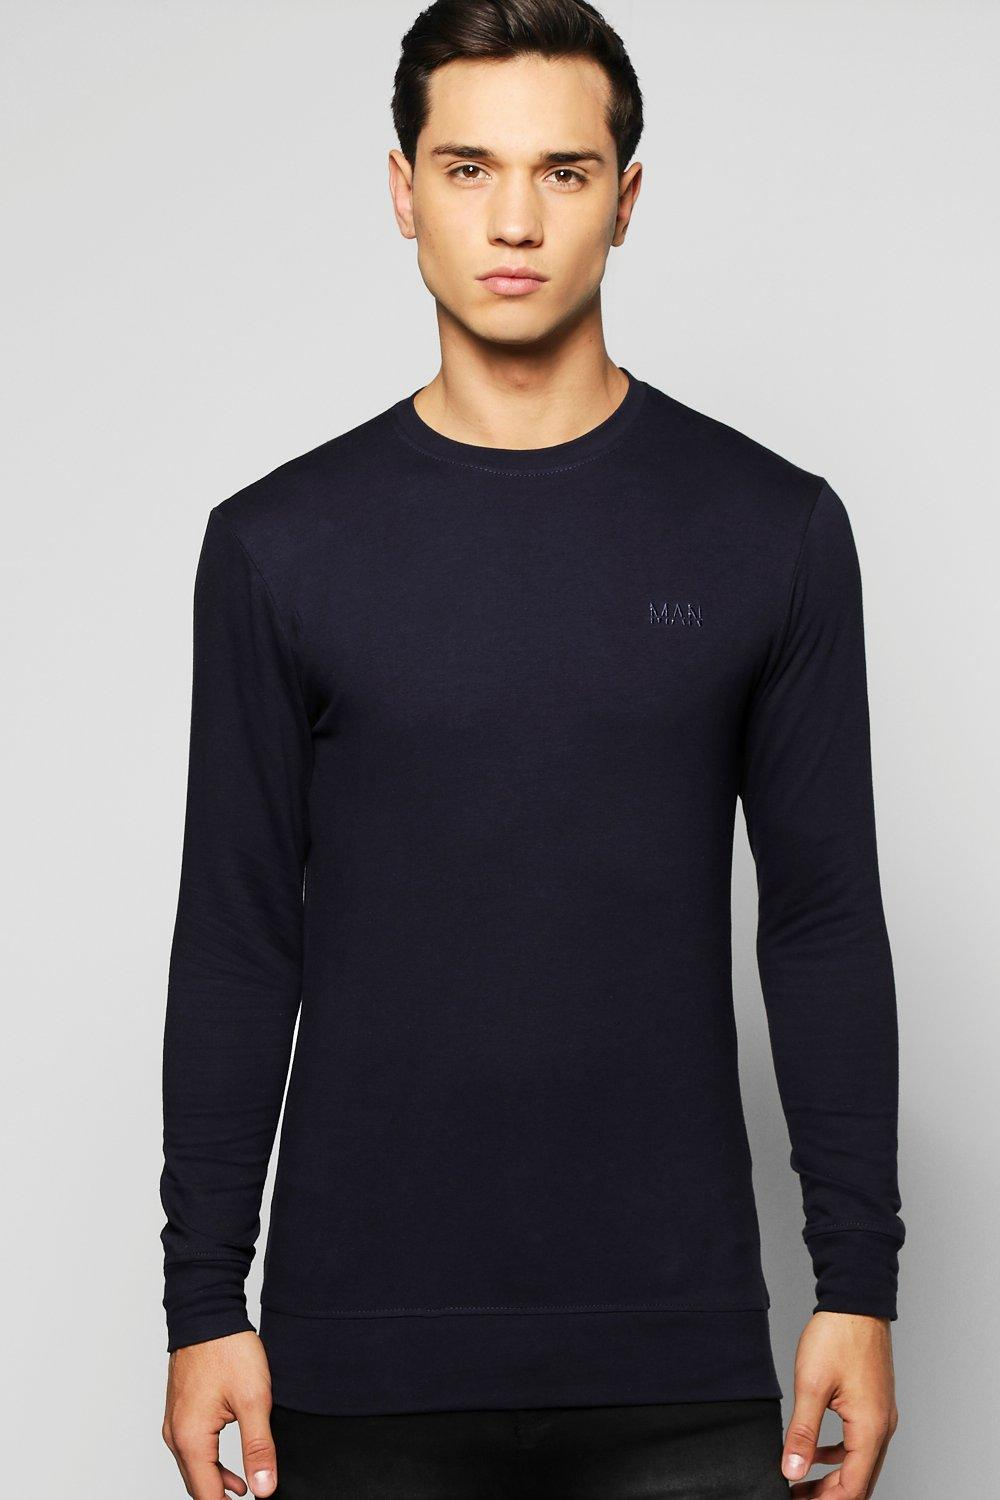 c2deba86 Mens Navy Muscle Fit Sweatshirt With Logo. Hover to zoom